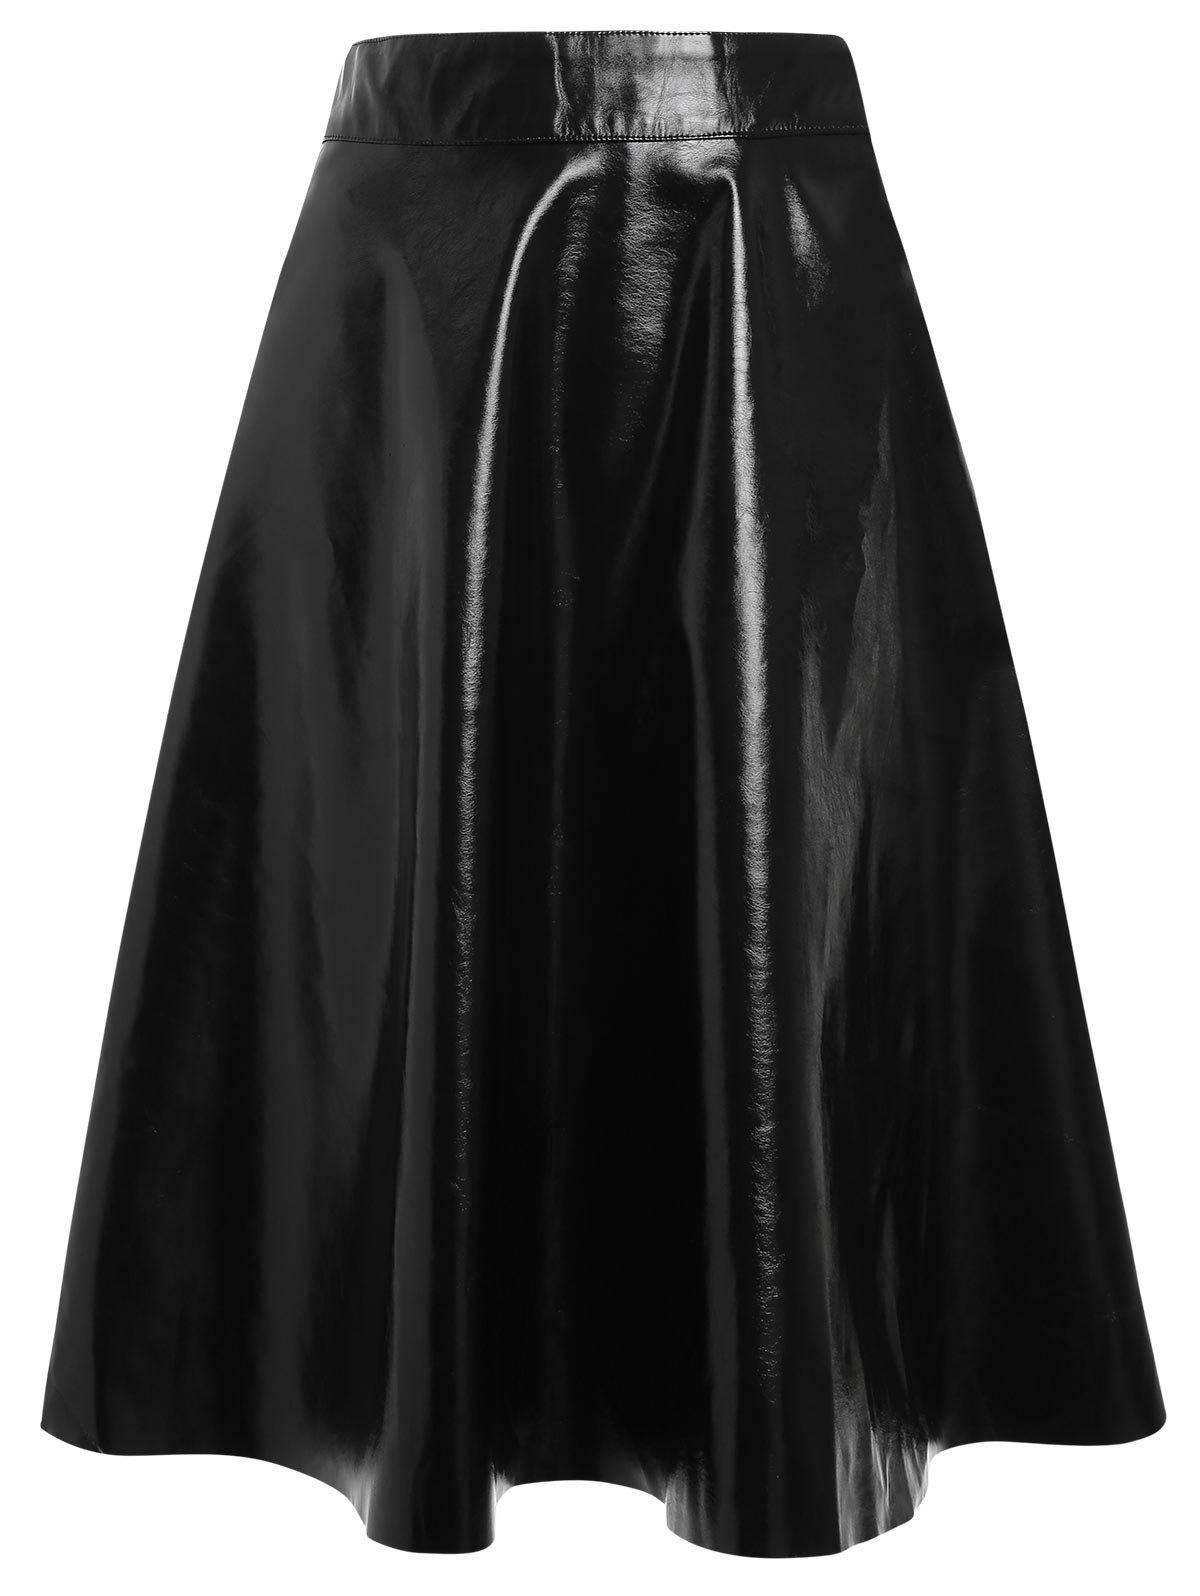 Chic Faux Leather Midi Flare Skirt